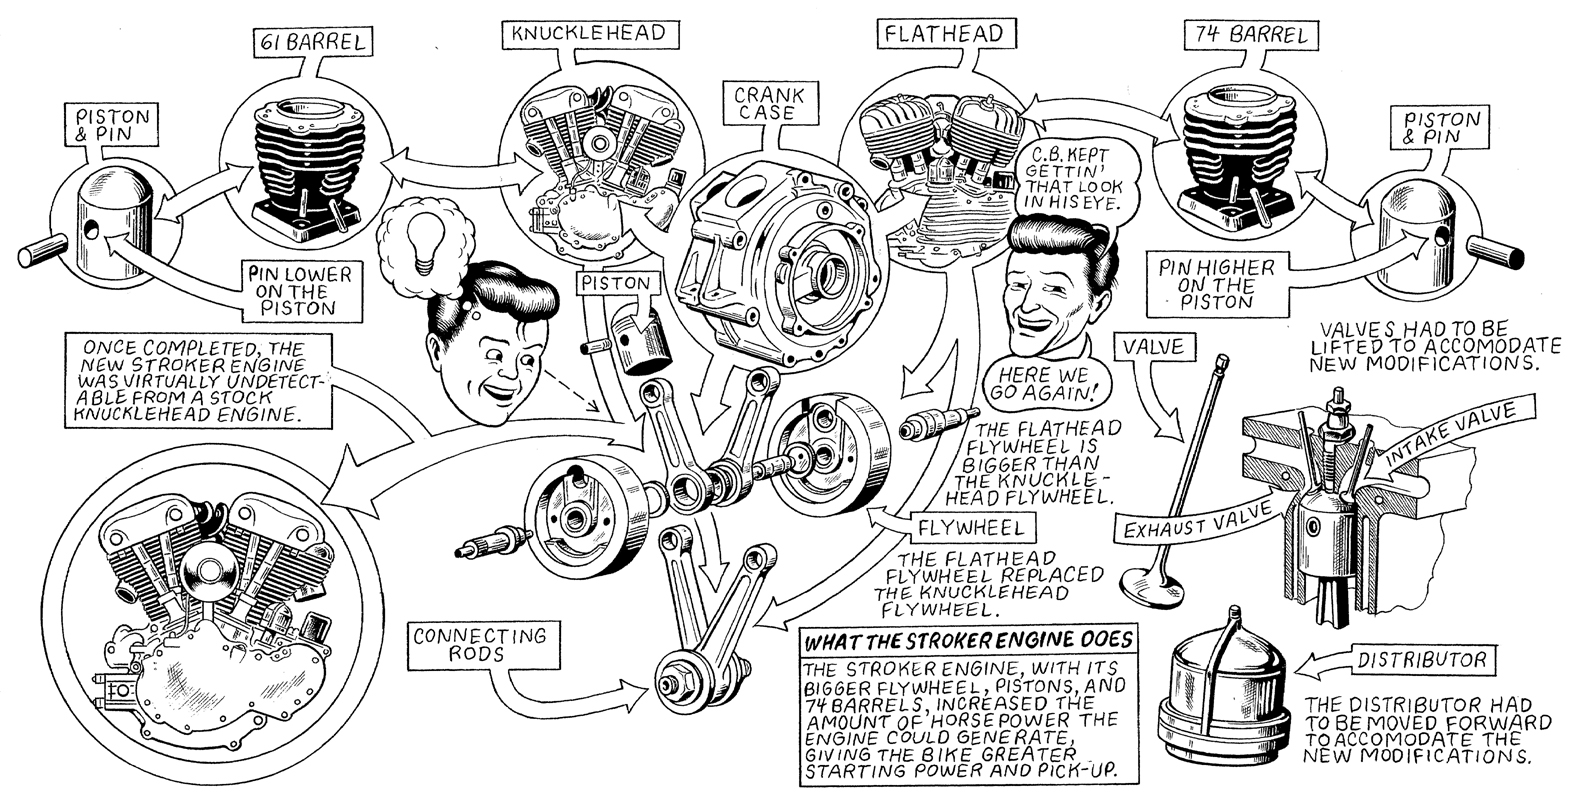 Harley Davidson Engine Diagram Guide And Troubleshooting Of Wiring Flathead Names Get Free Image About Evolution